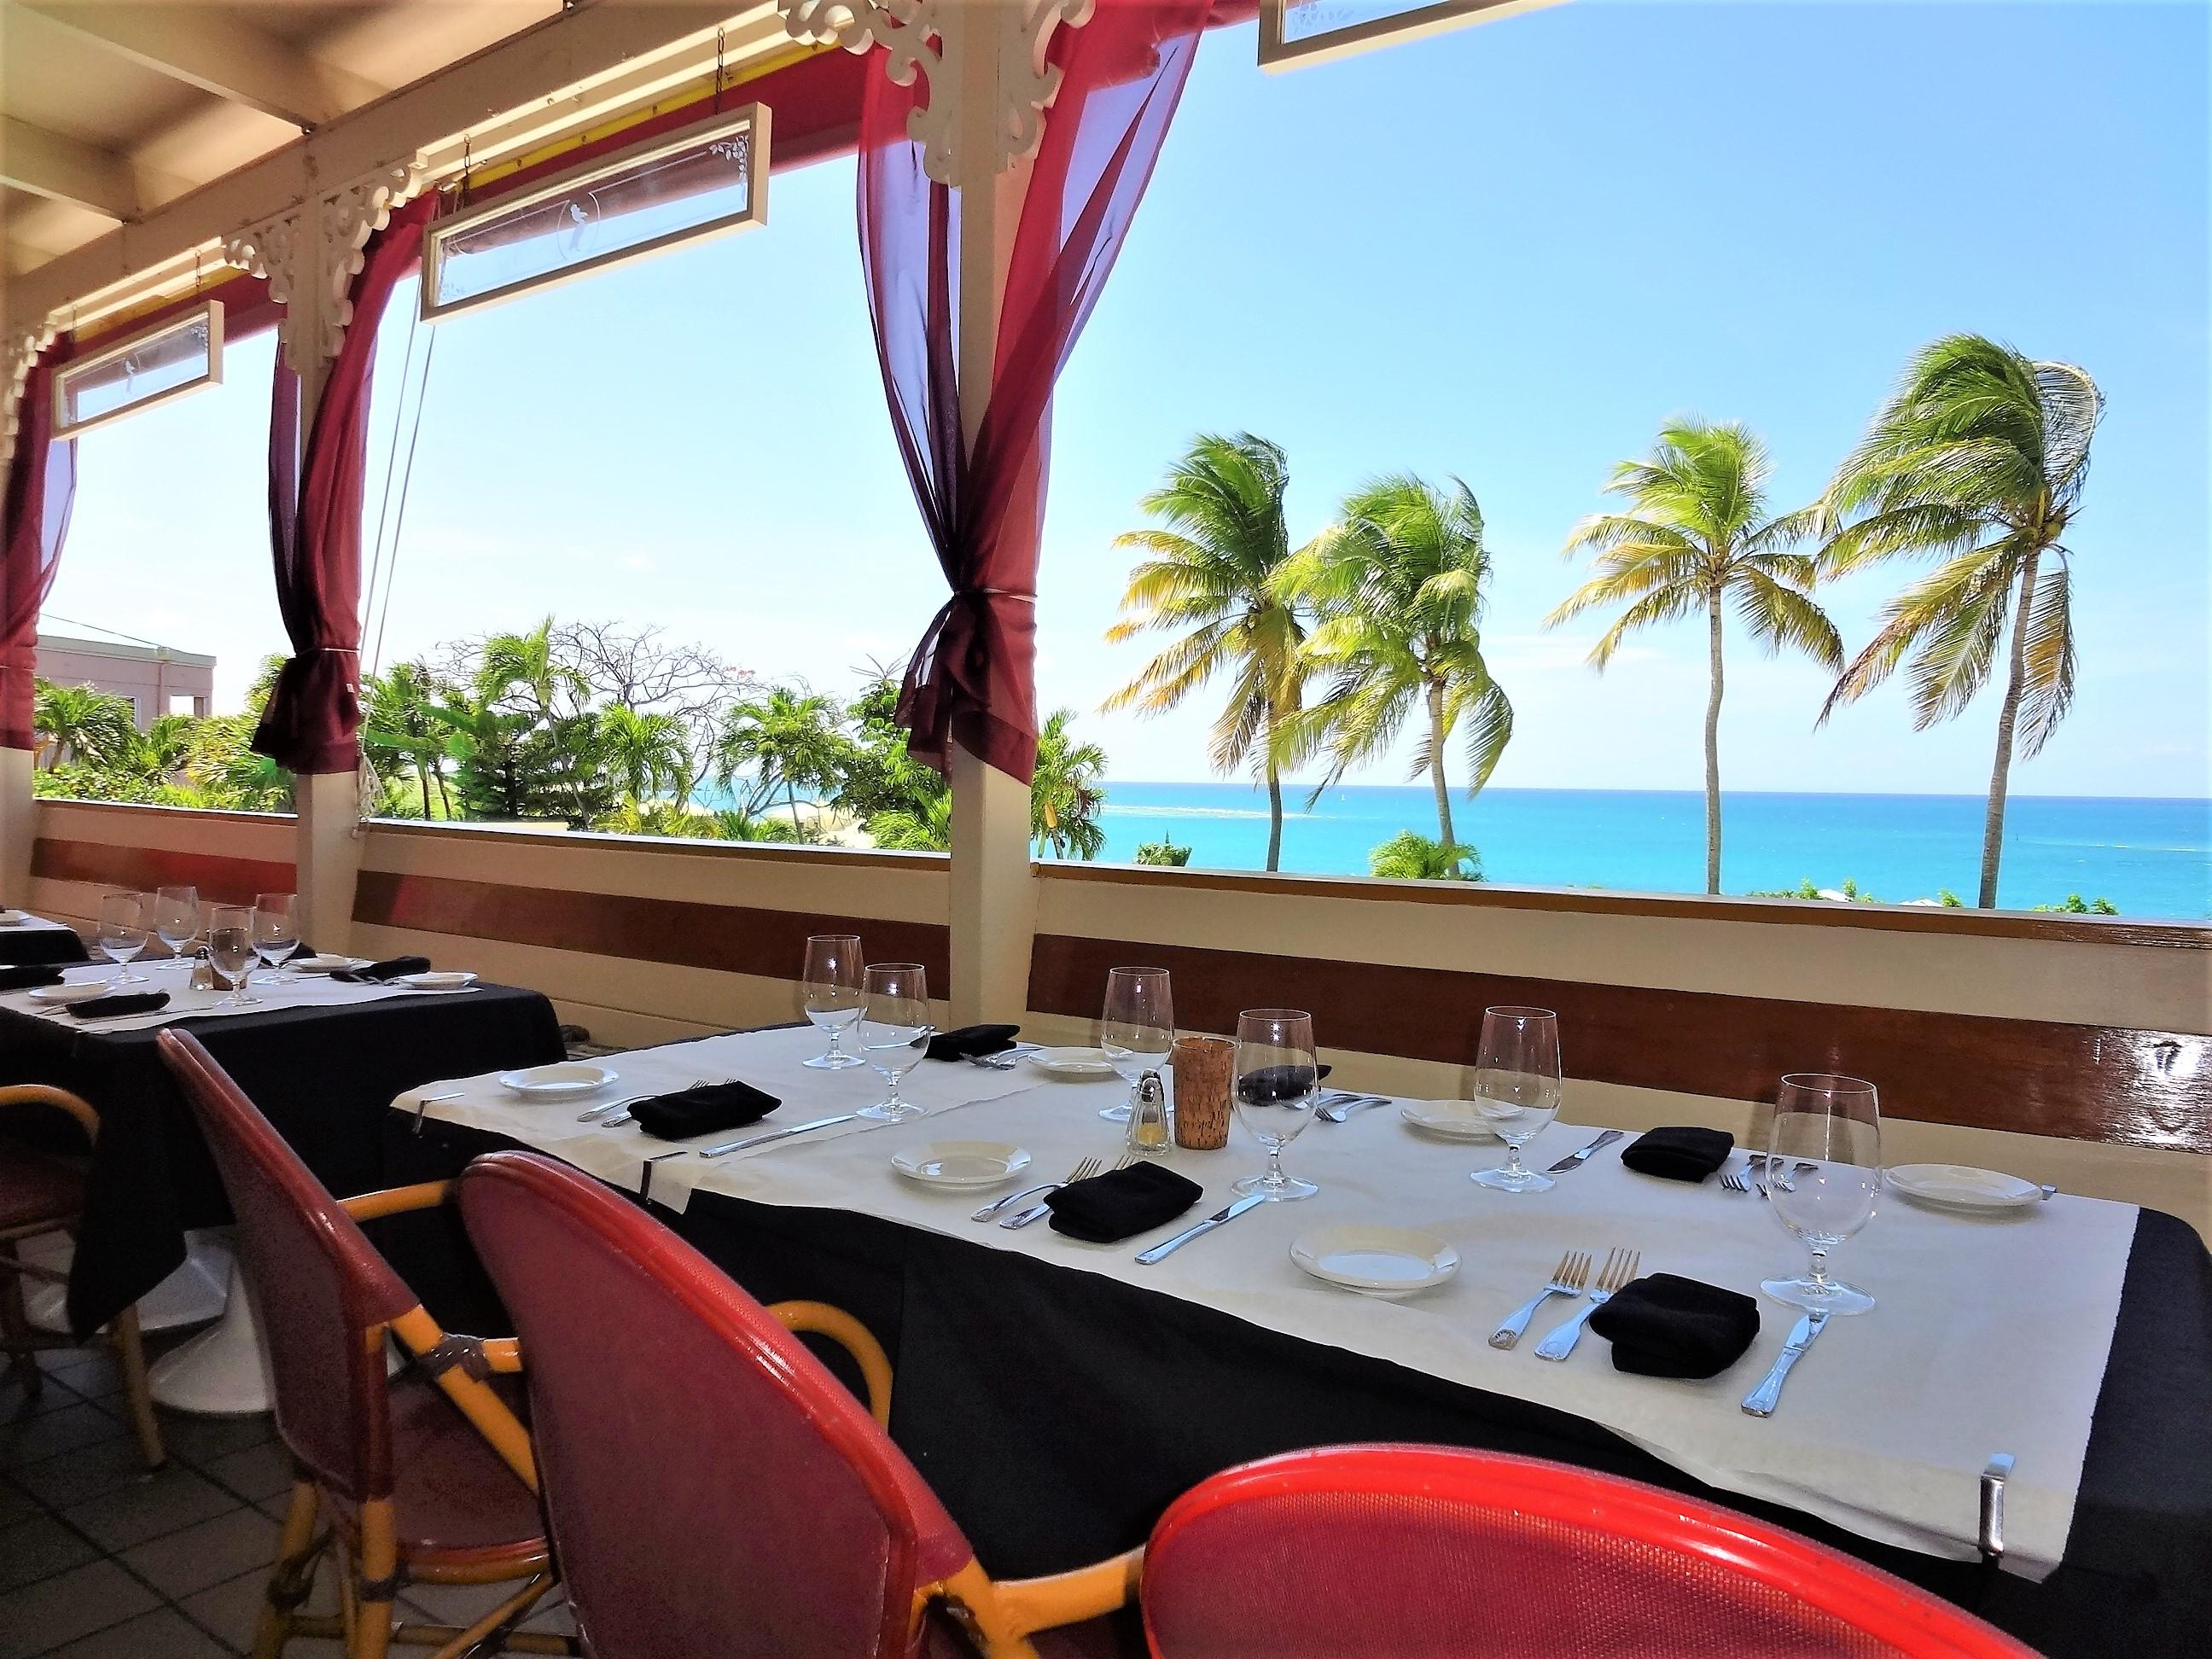 Relaxing Dining in the Caribbean